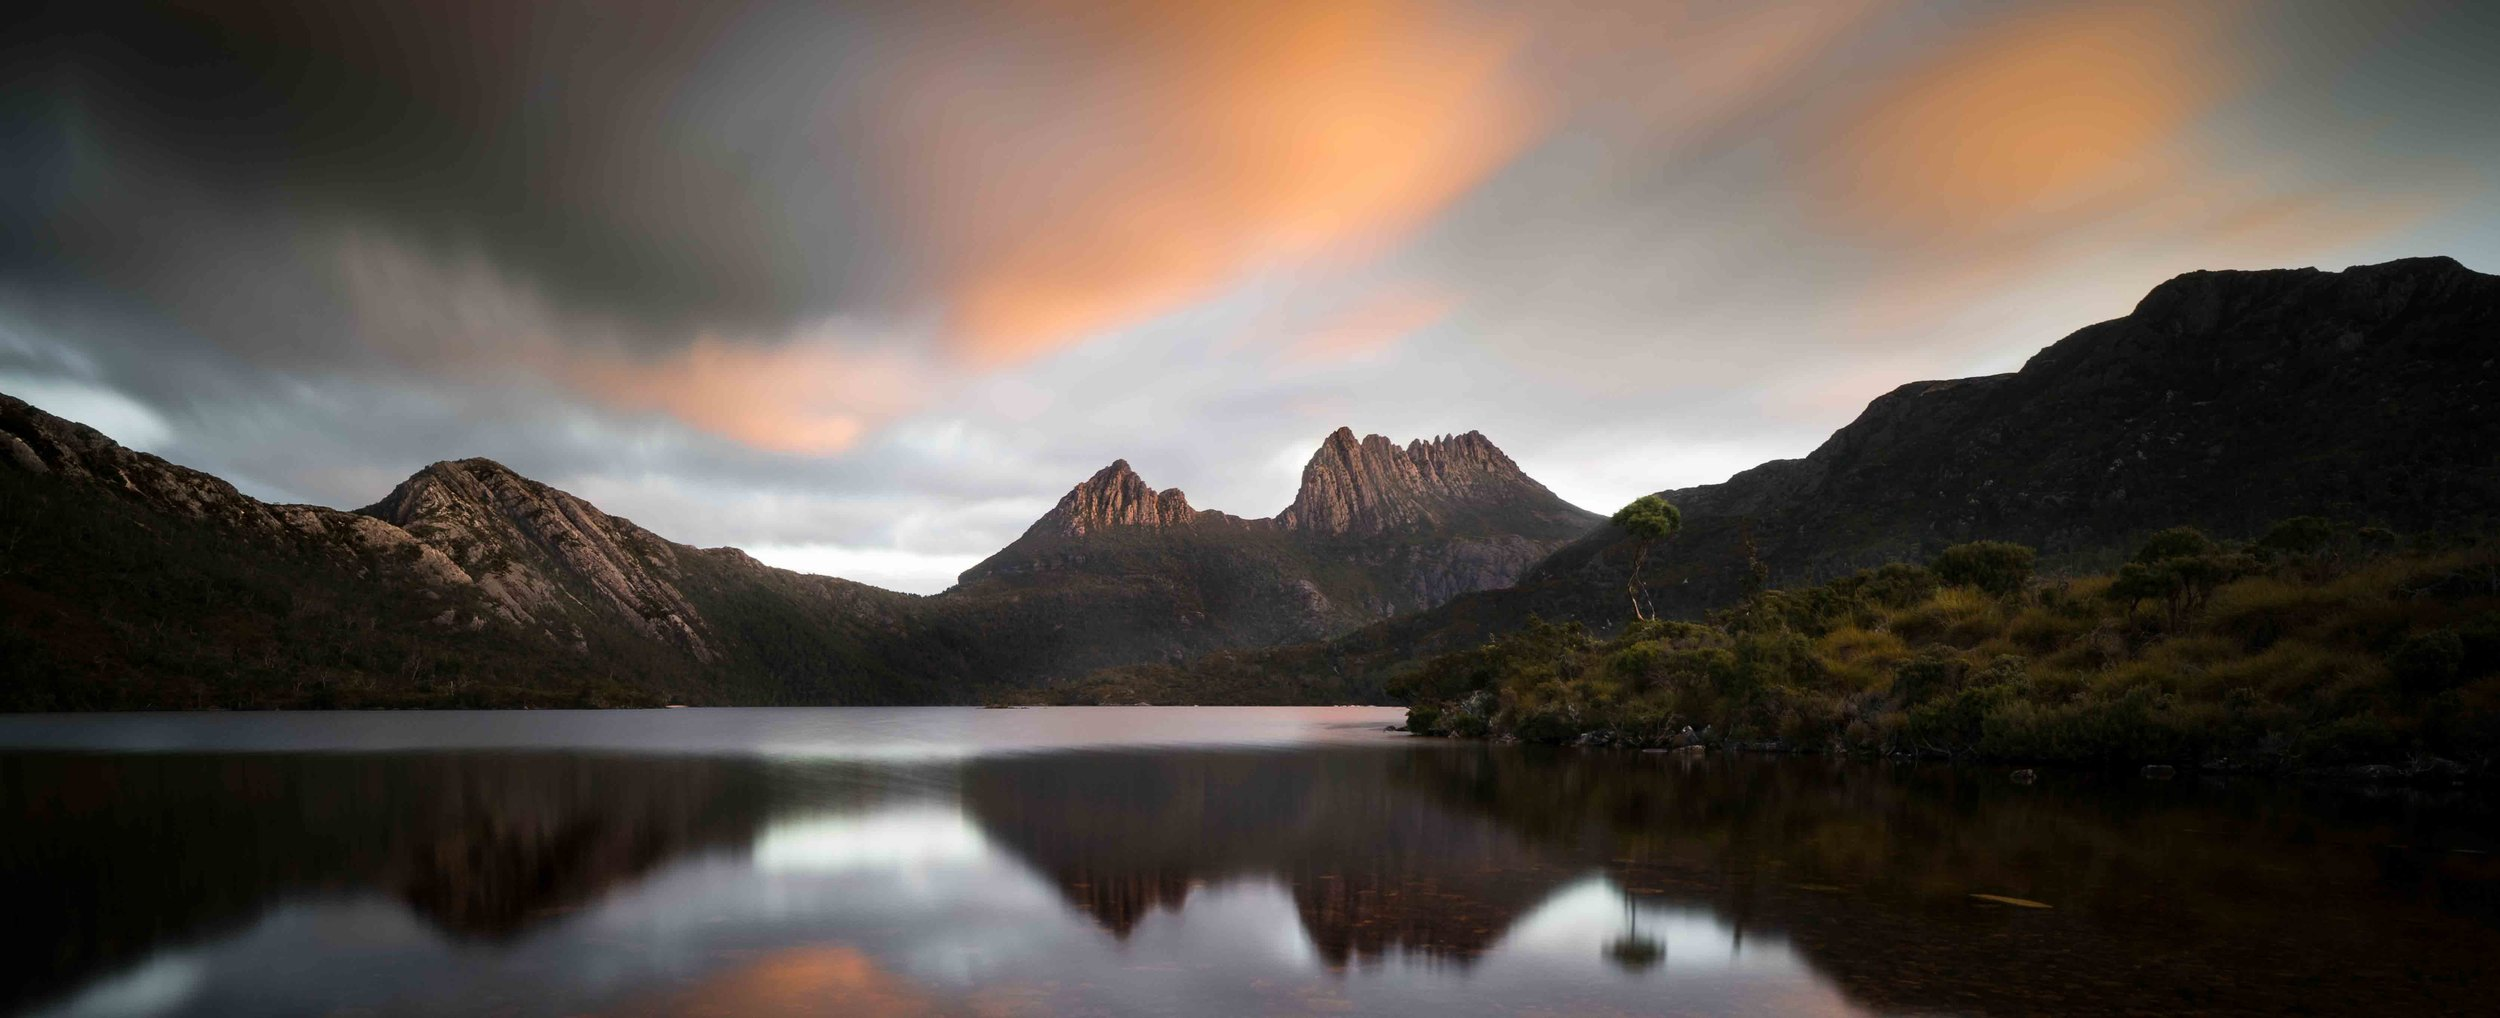 Cradle Mountain, Tasmania   Apparently a clear view of Cradle Mountains peak is rare sight. When its there, you get the post card photo.